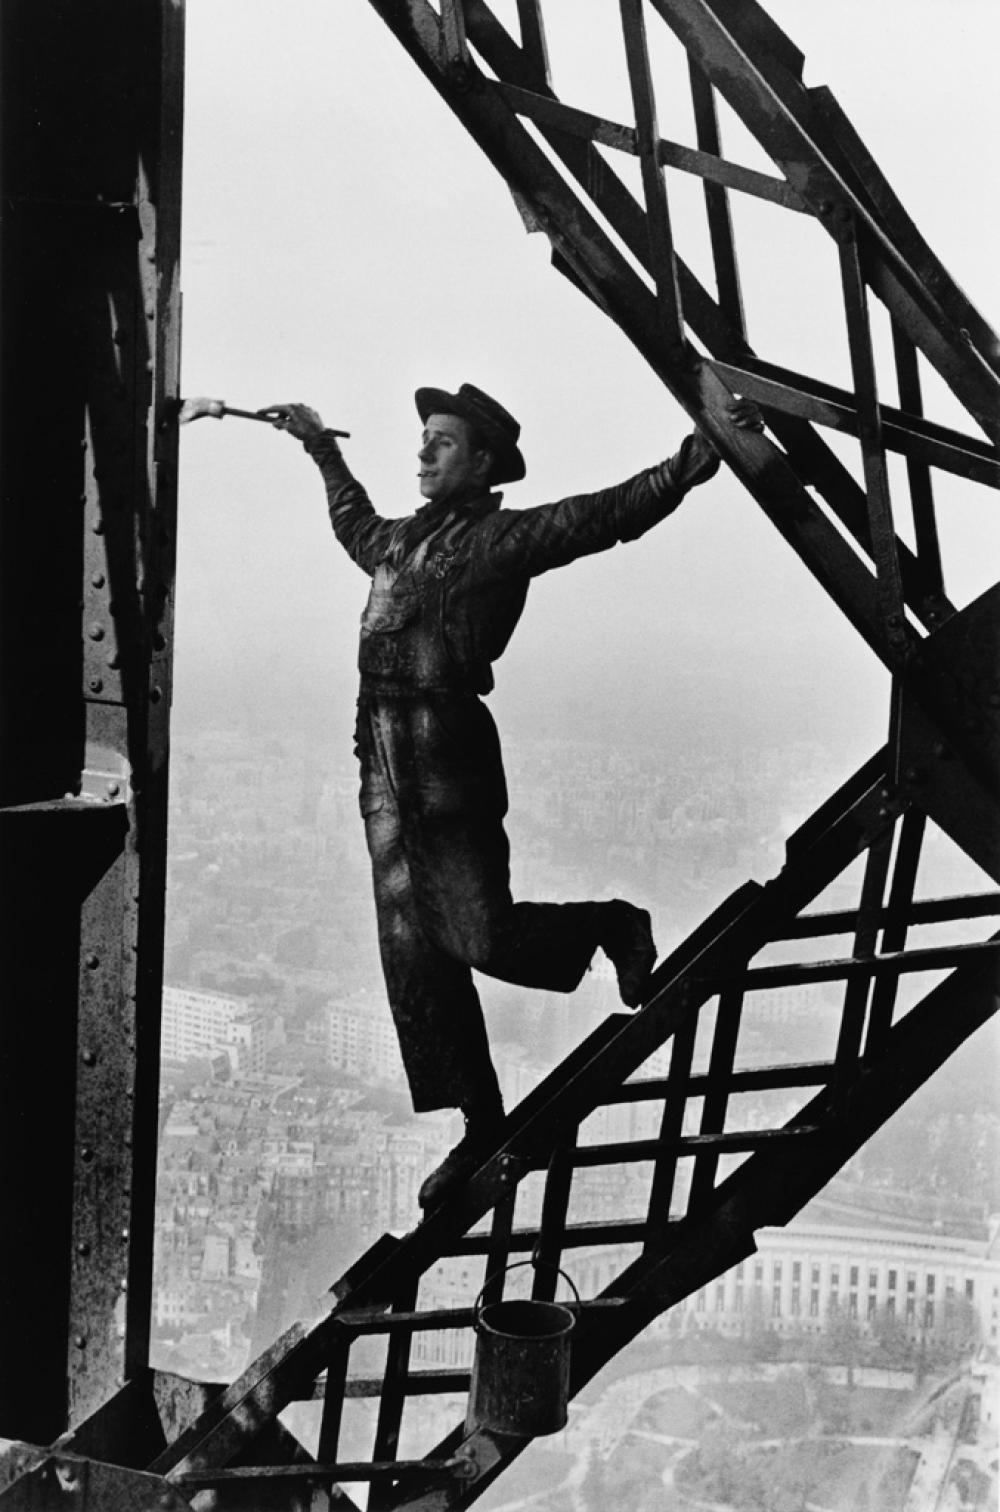 MARC RIBOUD (1923-2016) Painter on the Eiffel Tower, Paris.